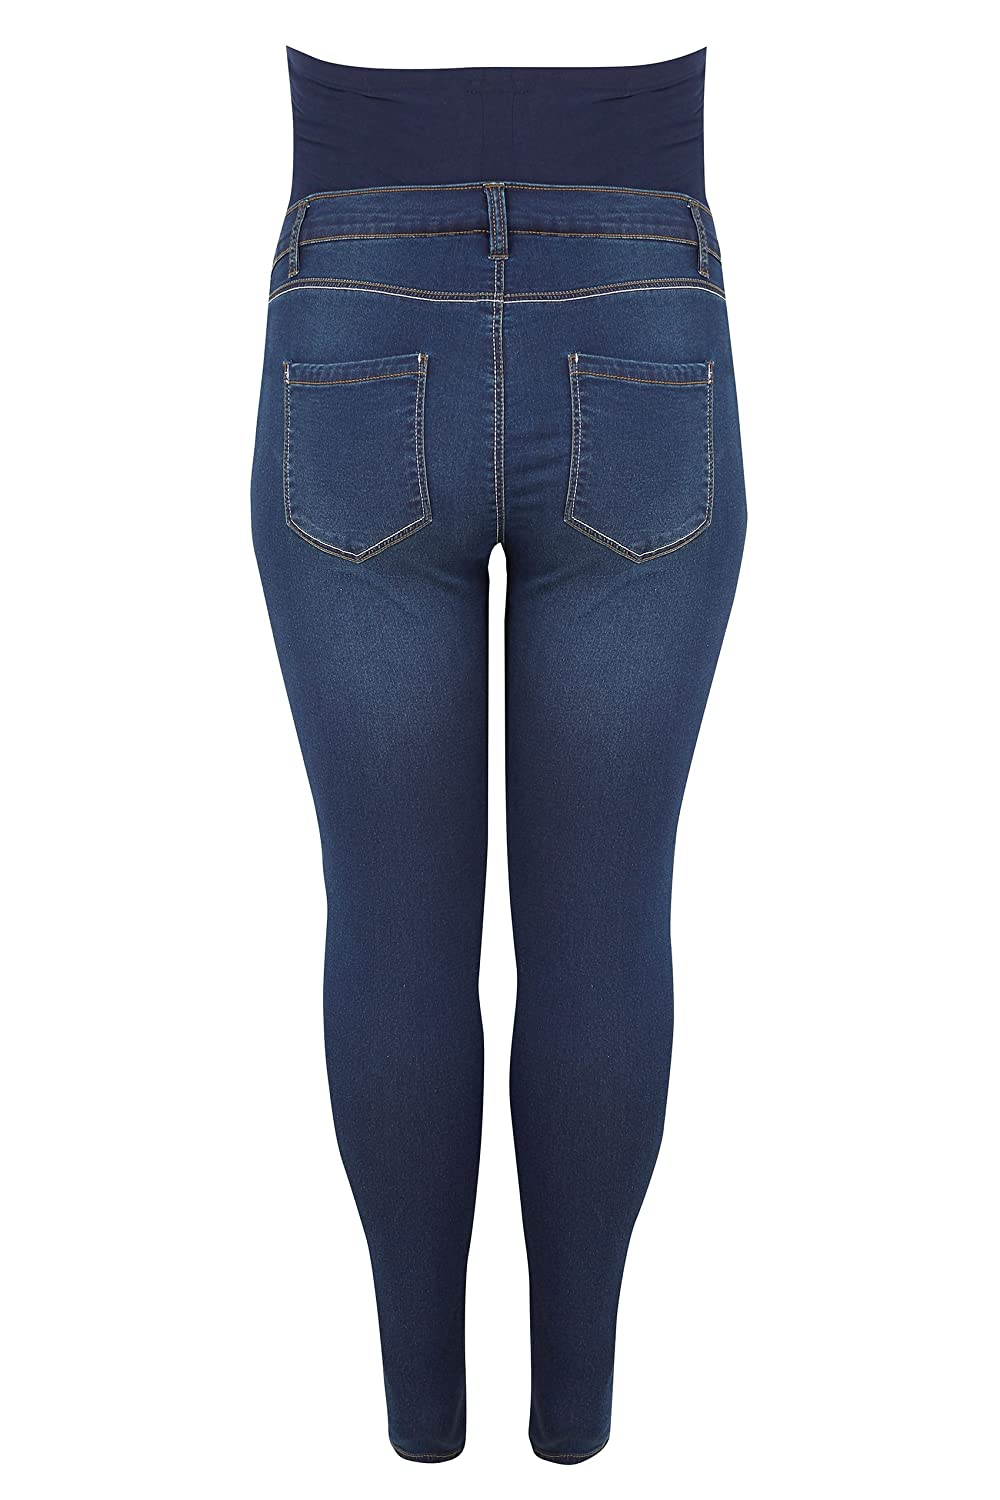 60aa0896166c5 Yours Women s Plus Size Bump It Up Maternity Super Stretch Skinny Jeggings  with Comfor  Amazon.co.uk  Clothing